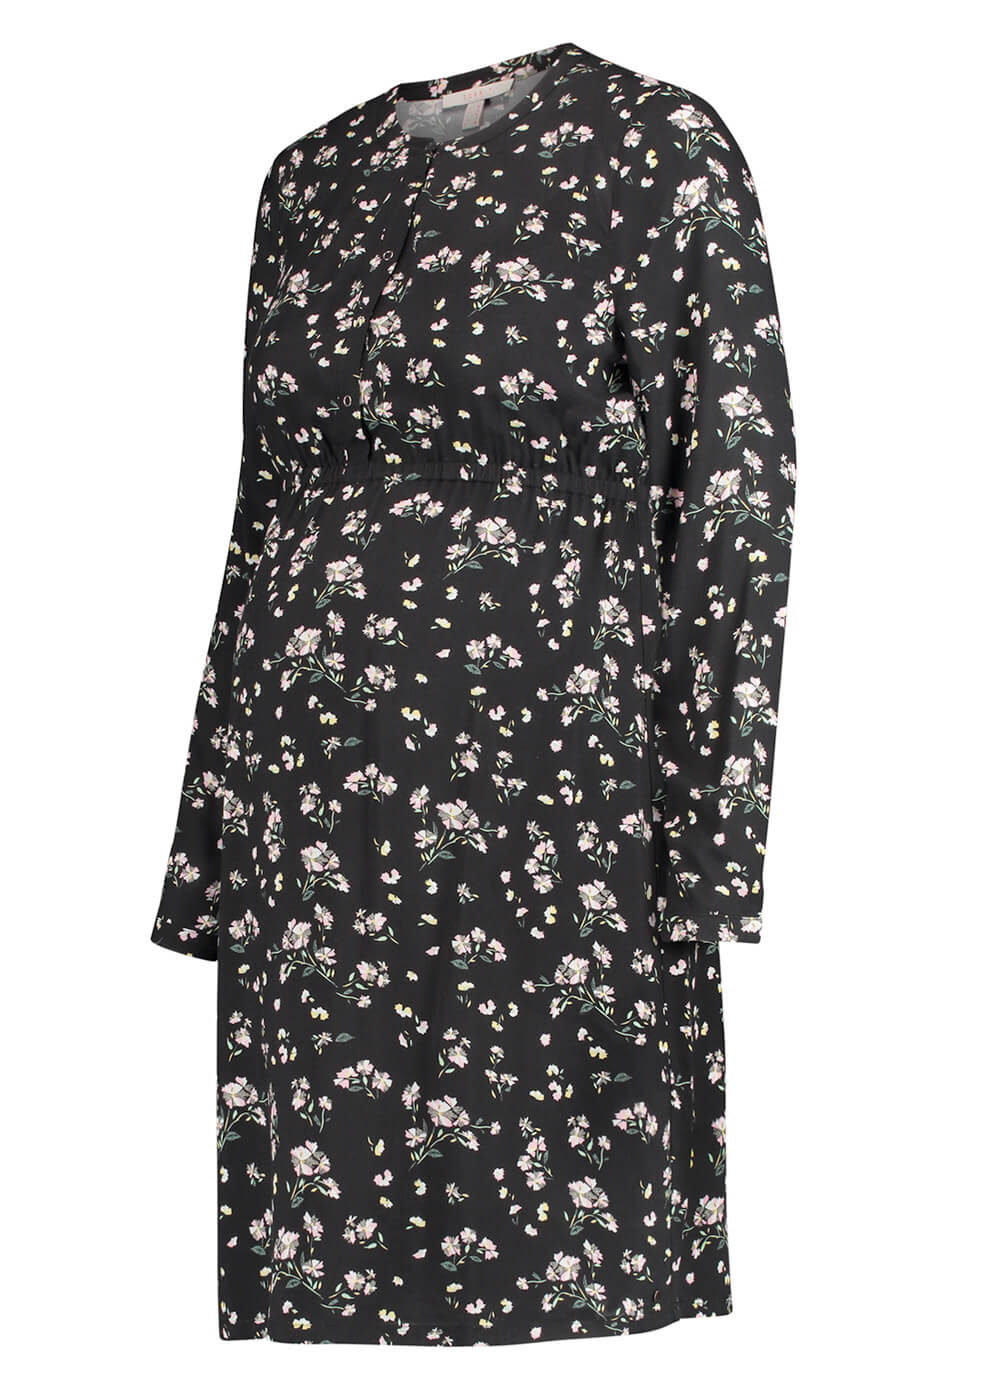 Viscose Maternity Nursing Dress in Black Floral by Esprit